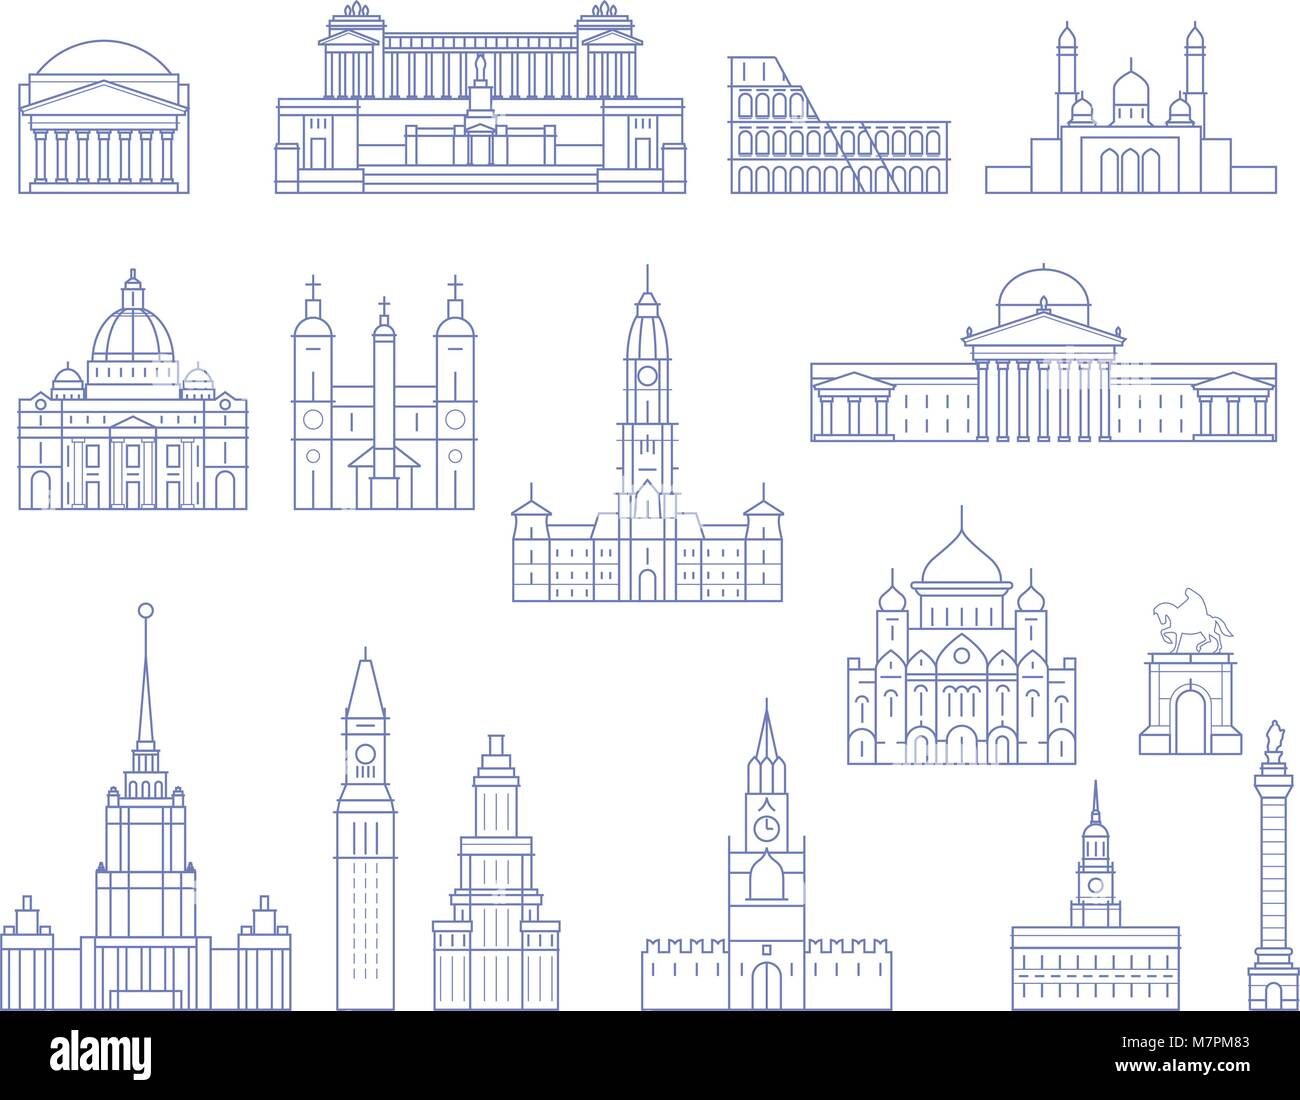 European architecture - buildings, cathedrals and monuments in line style - Stock Vector